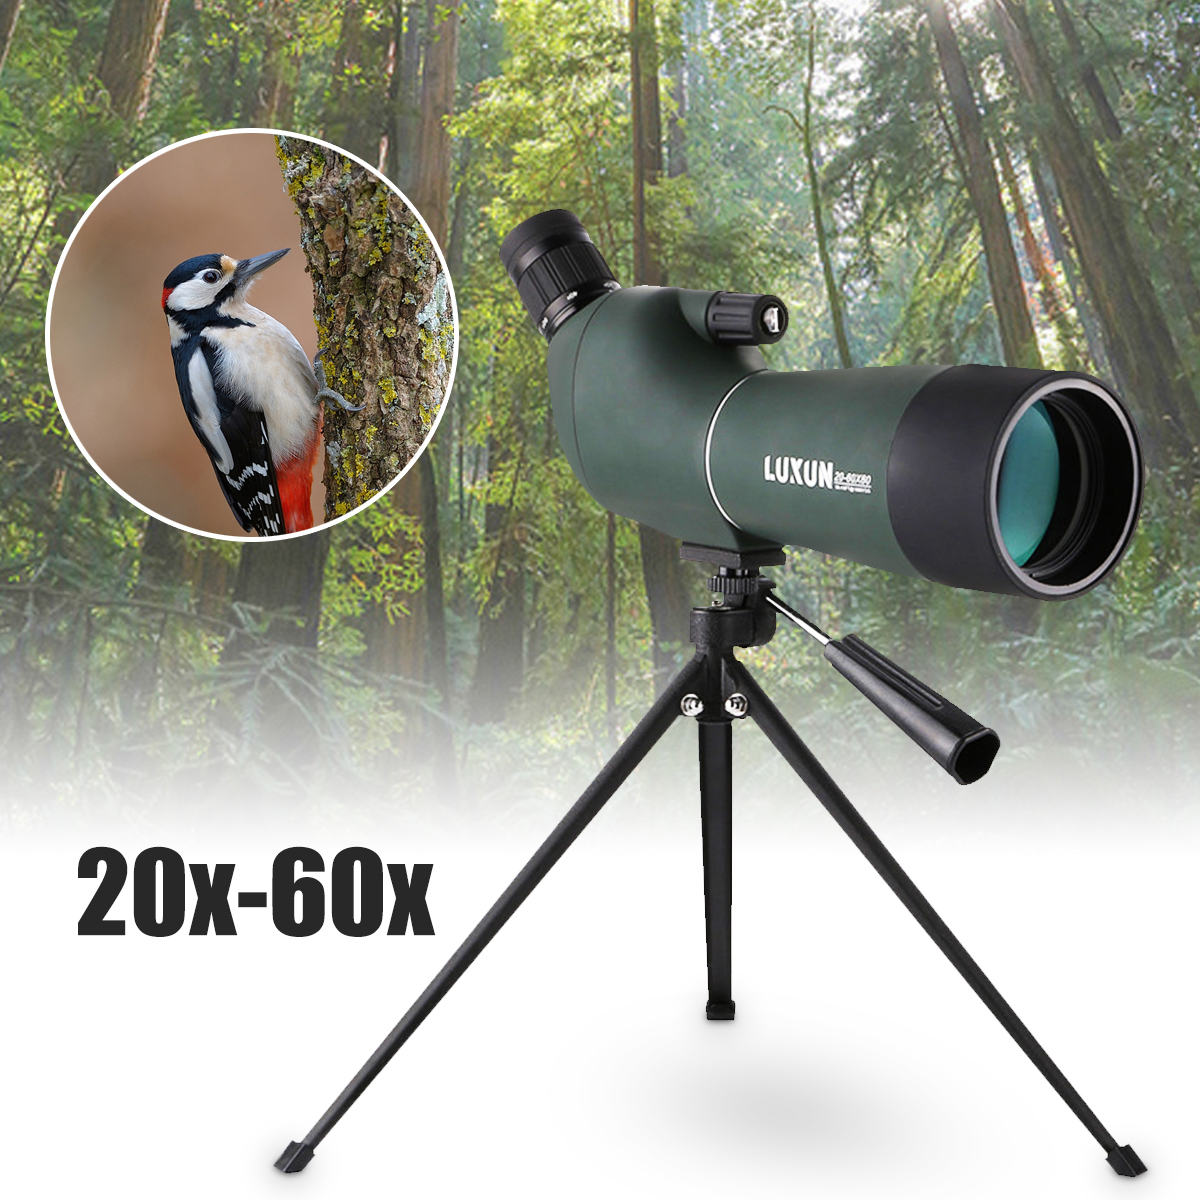 20-60x60mm Night Vision Spotting Scope Telescope Zoom 60mm Waterproof Birdwatch Hunting HD Monocular Tripod Outdoor Camping 15 45x60 spotting scope waterproof telescope 60mm 15 45x zoom birdwatch long range hunting monocular with tripod mount page 4